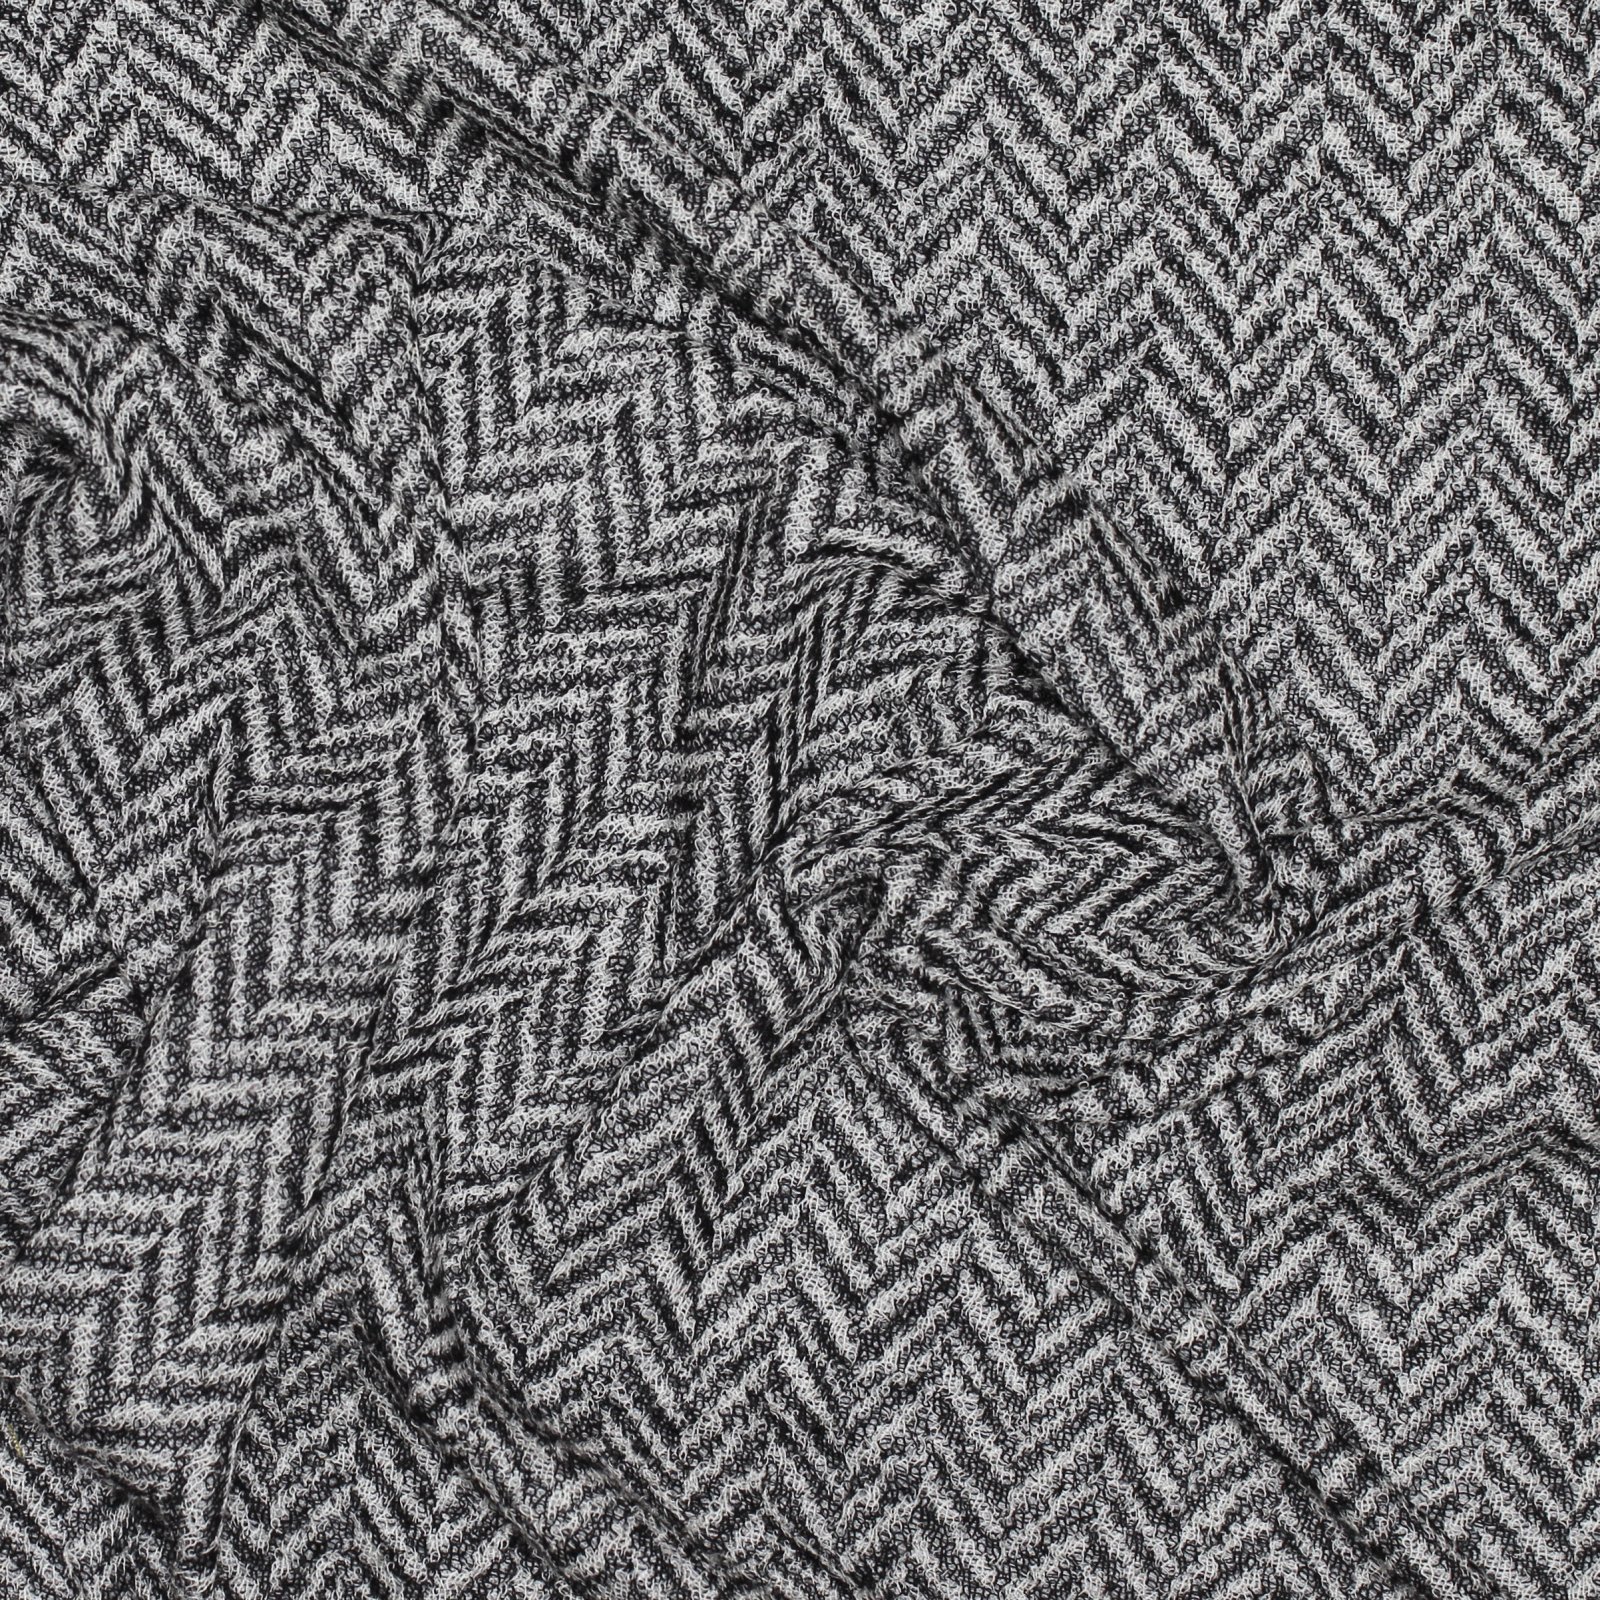 Herringbone Wool Faced with Cotton Backed Knit